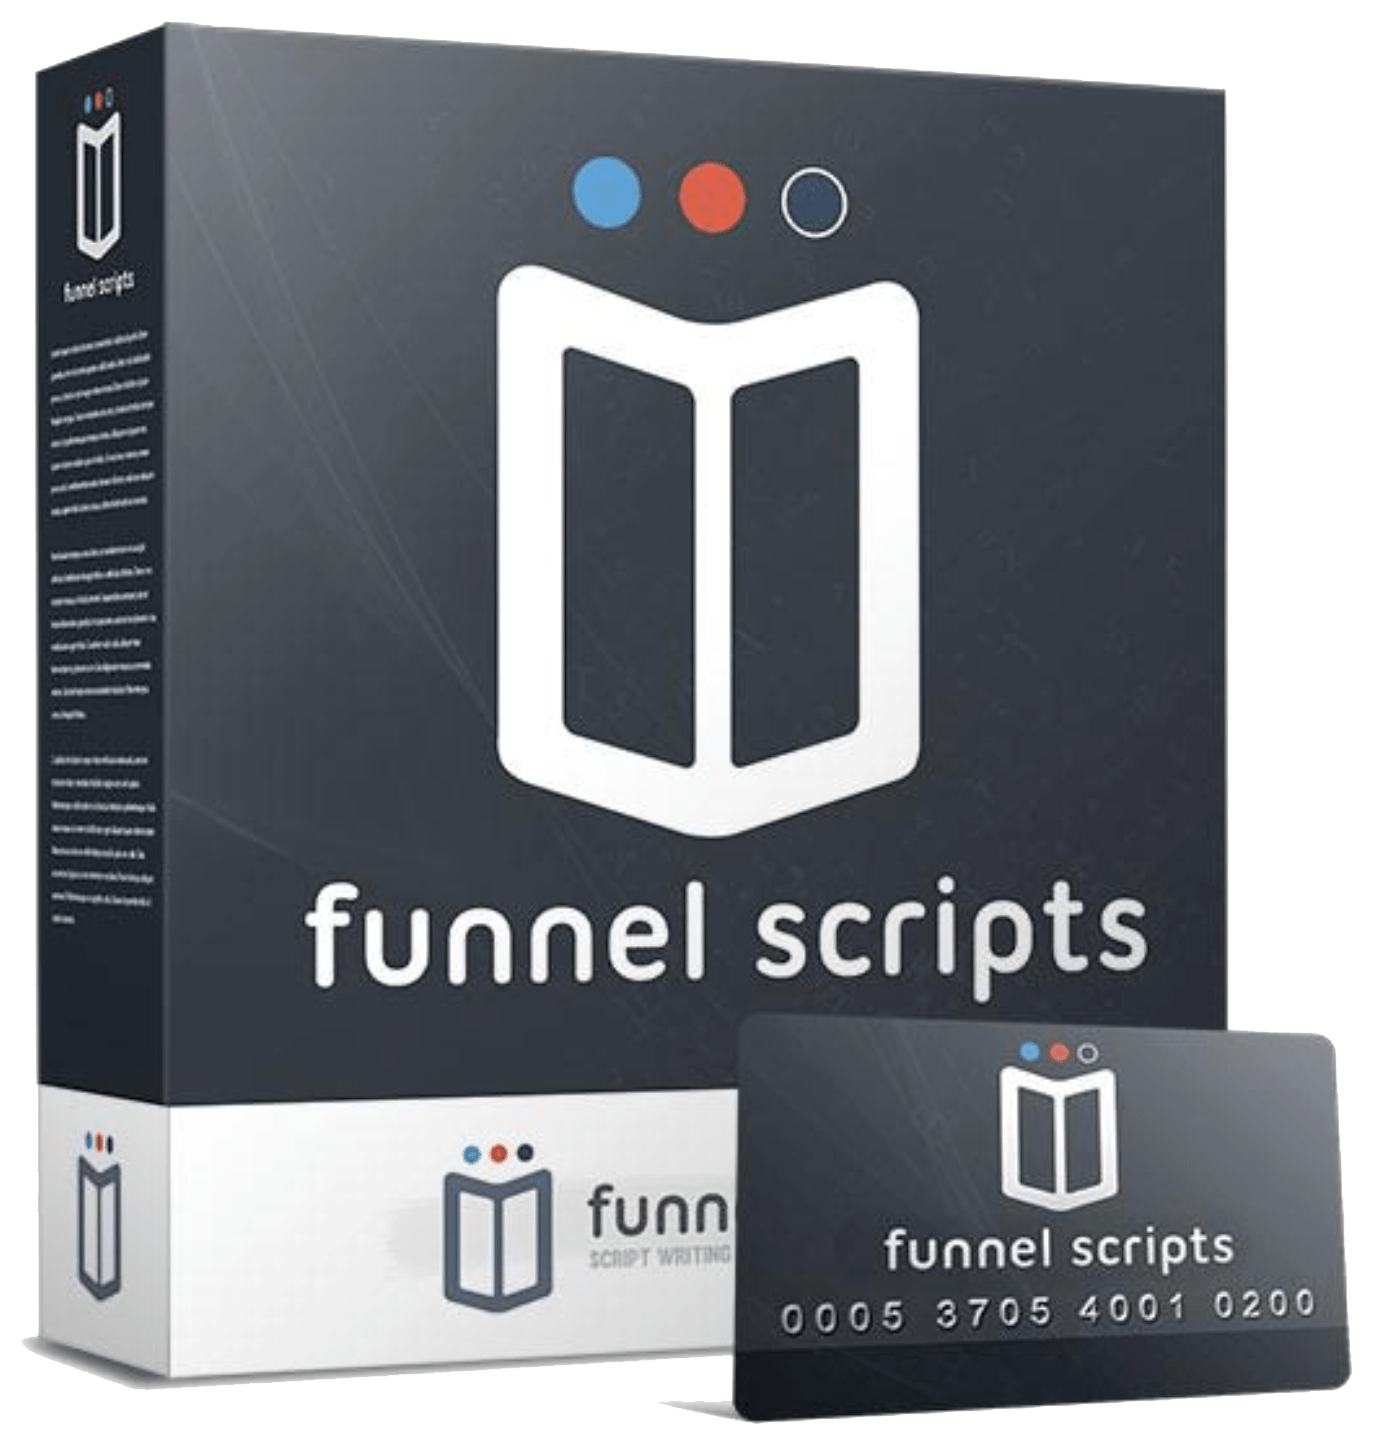 funnel scripts cost